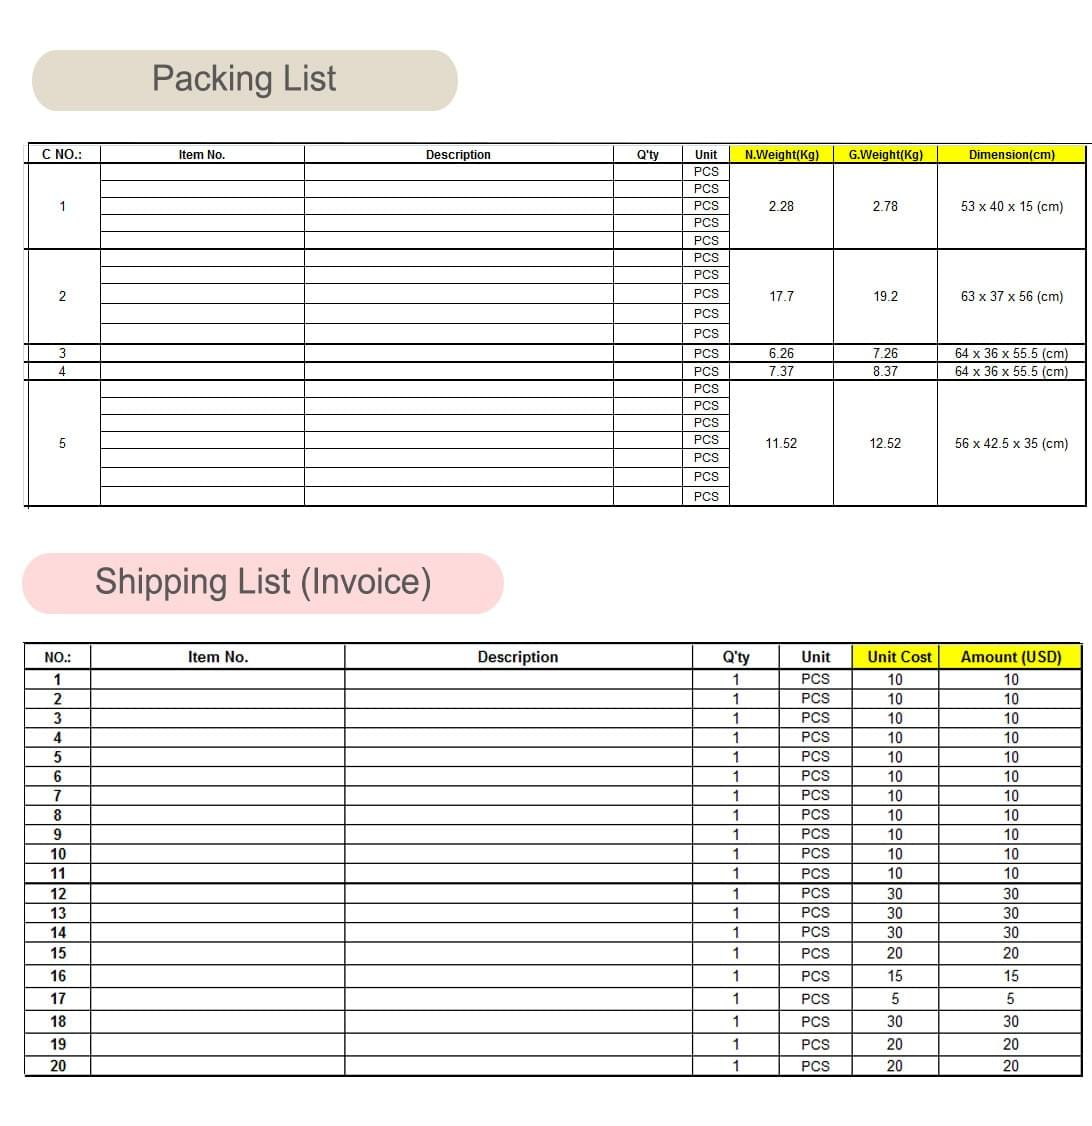 packing list 與 Shipping List 的差異